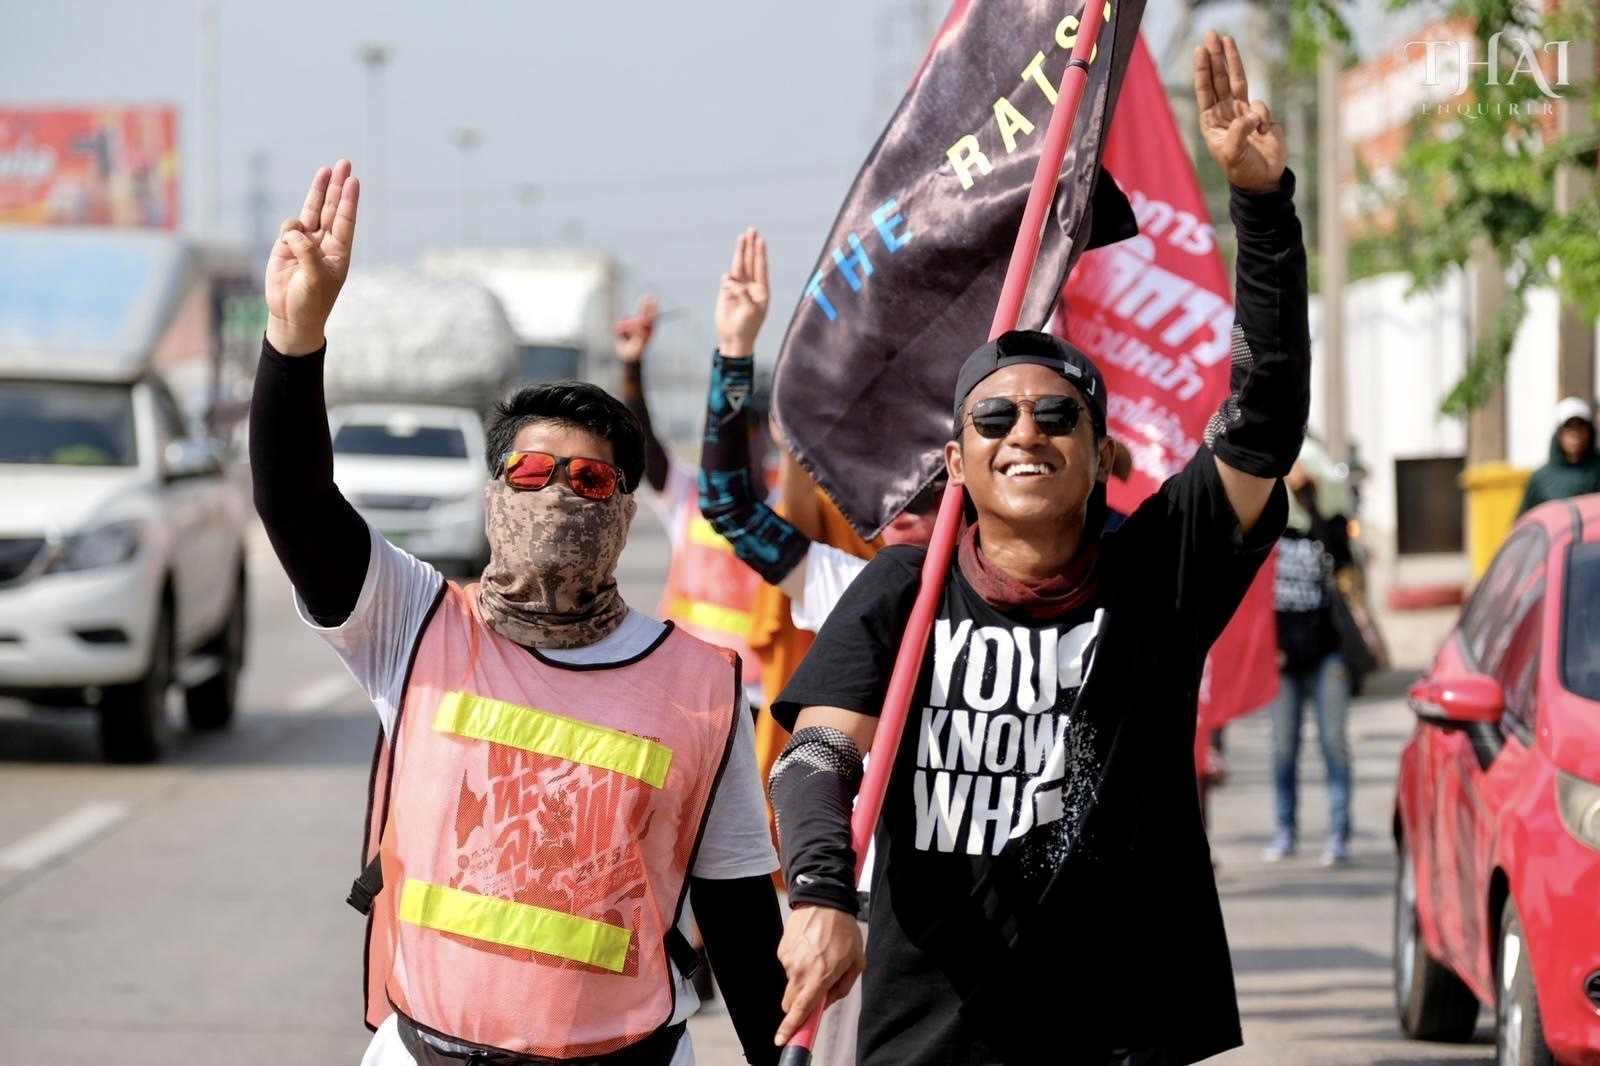 250-km pro-democracy protest march to reach Bangkok - Thai Enquirer